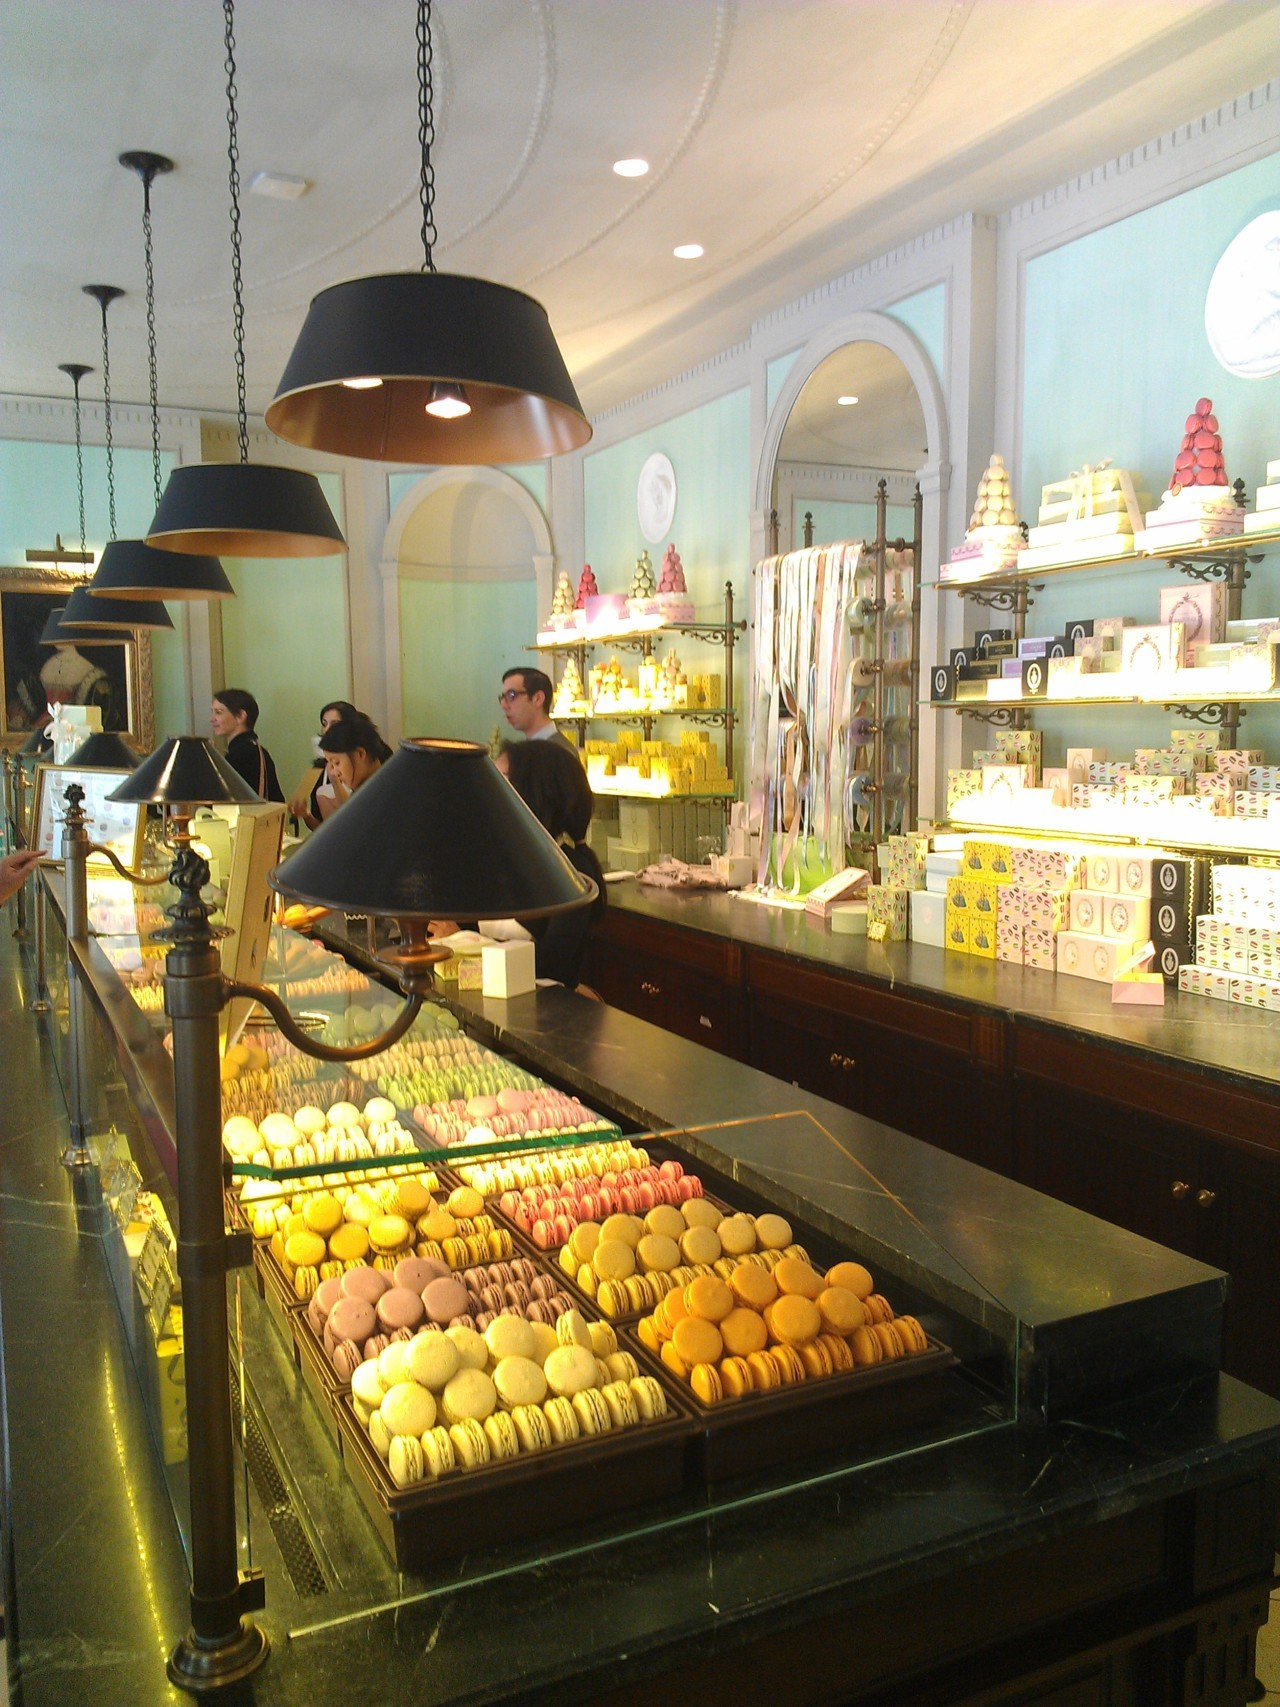 Maison Ladurée in Upper East Side, New York City